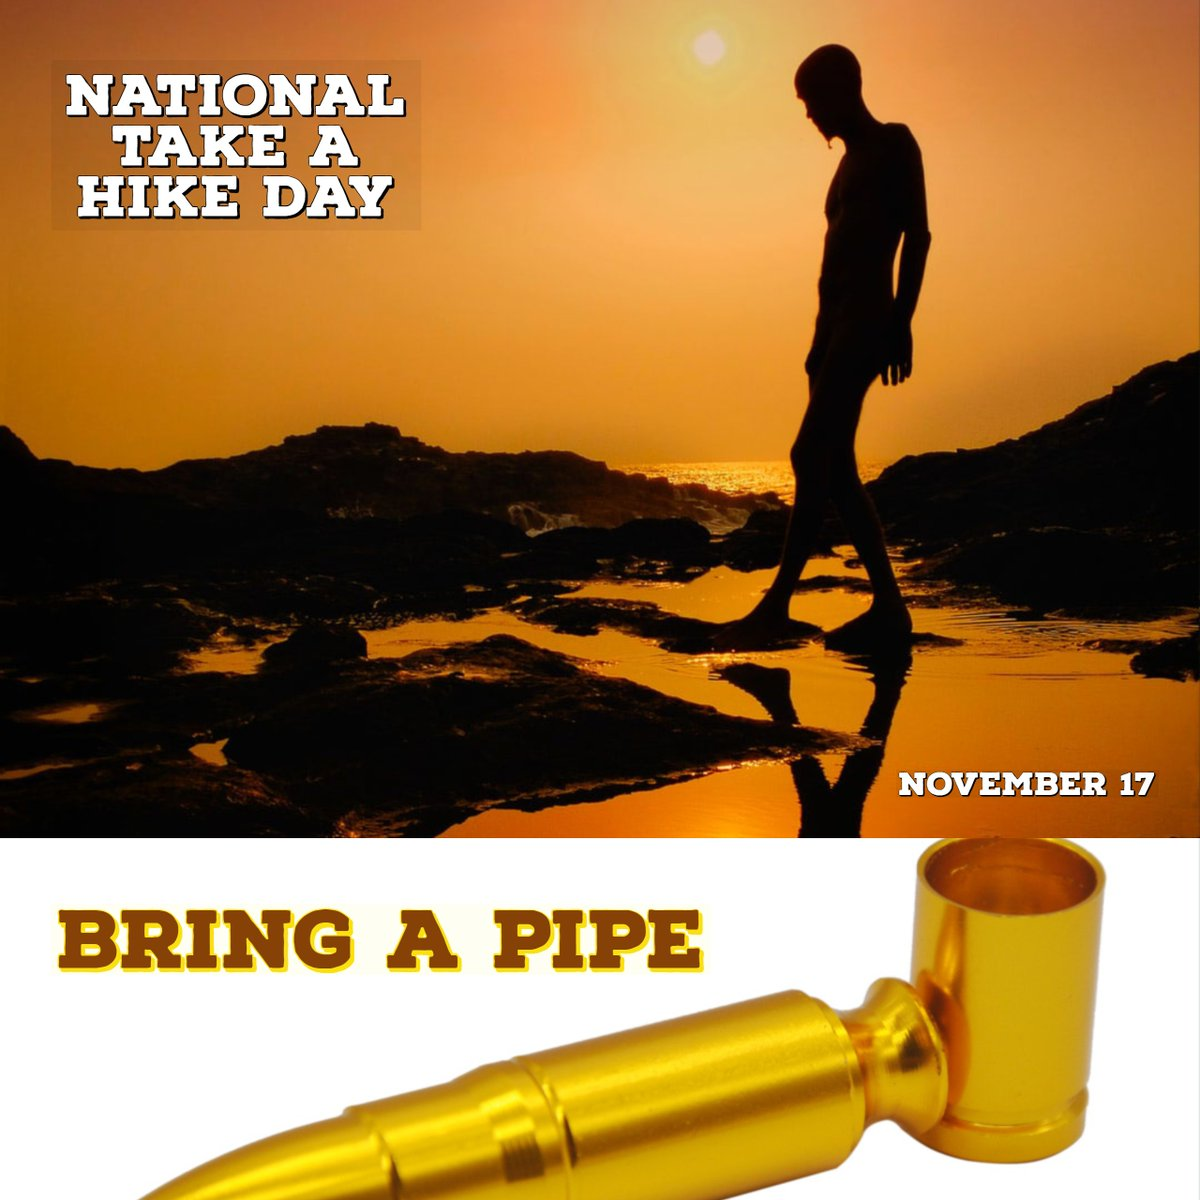 National Take a Hike Day - Bring a Pipe    #MooLuxe  #NationalTakeaHikeDay #hike #hiking #pipe #potpipe #weed #exercise #thc  #retail #sales